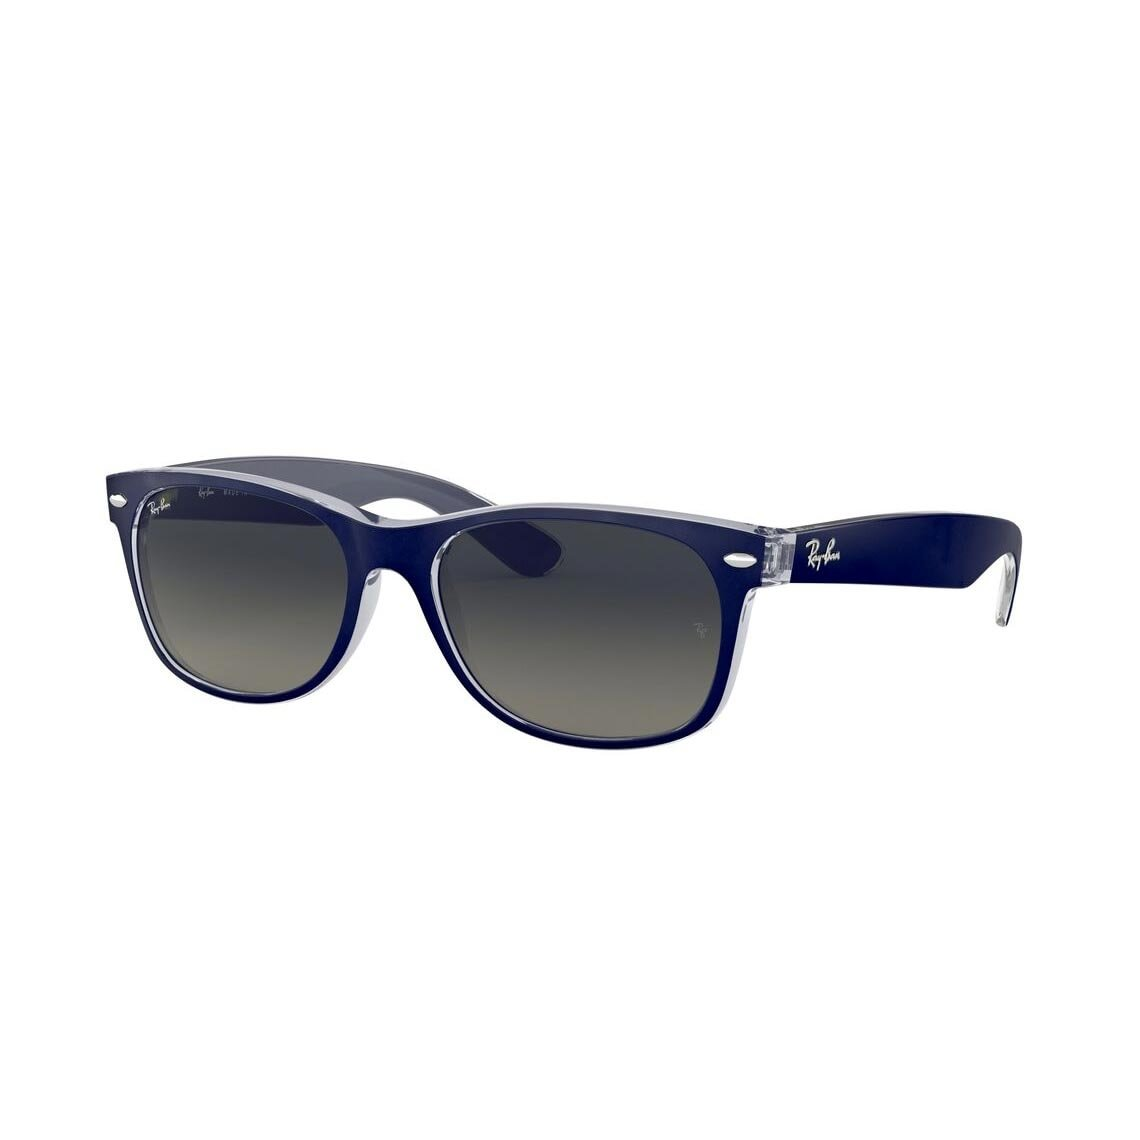 Ray-Ban New Wayfarer RB2132 605371 55